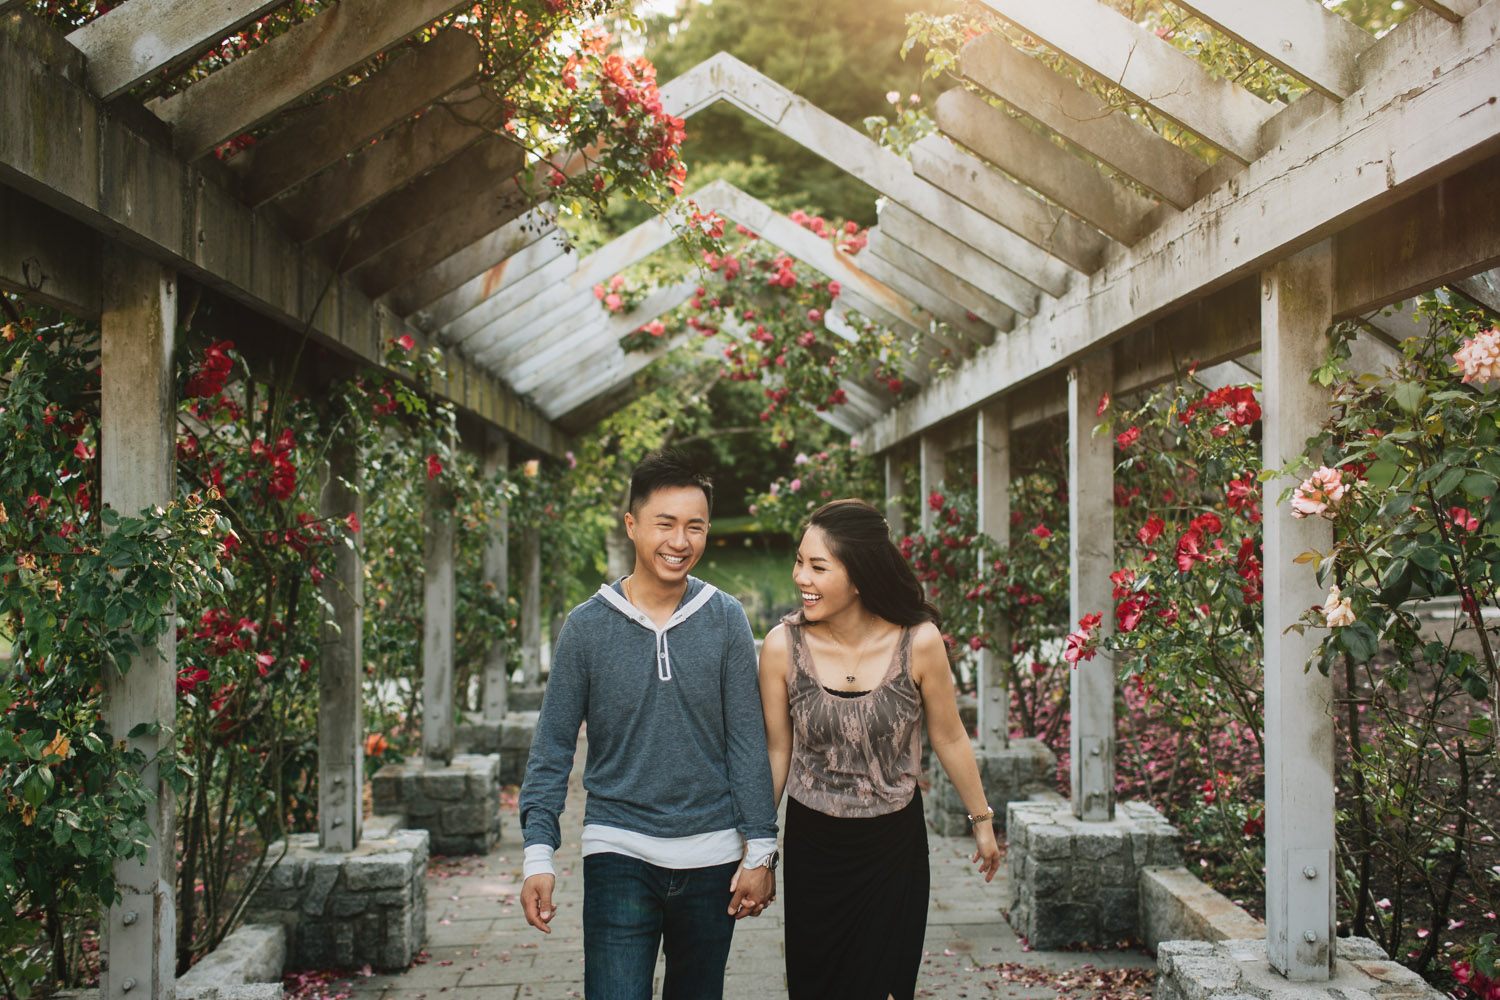 vancouver candid photography lifestyle rose garden